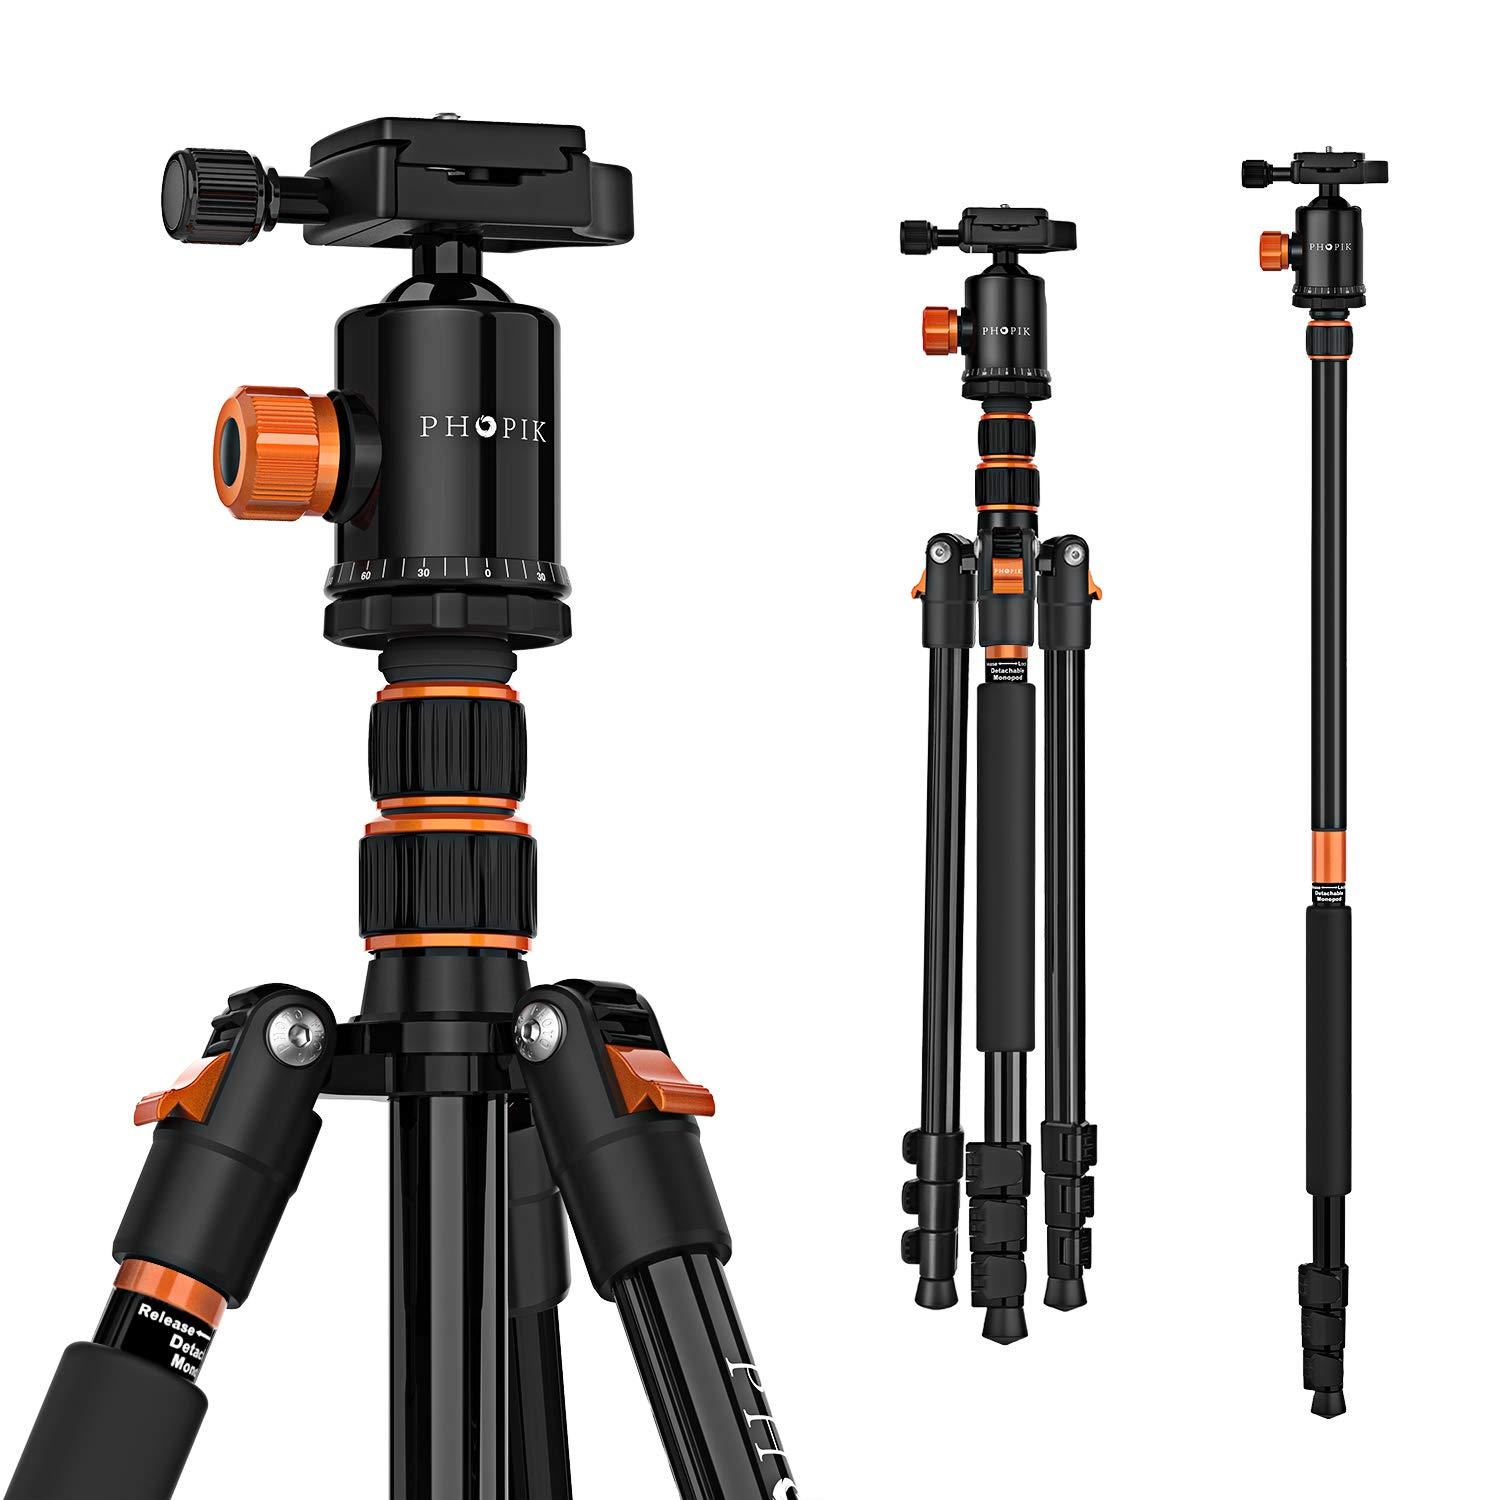 PHOPIK 77 Inches Tripod, Lightweight Aluminum Camera Tripod for DSLR, Photography Tripod with 360 Degree Ball Head 1/4'' Aluminum Quick Release Plate Professional Tripod Load up to 17.6 Pounds by PHOPIK